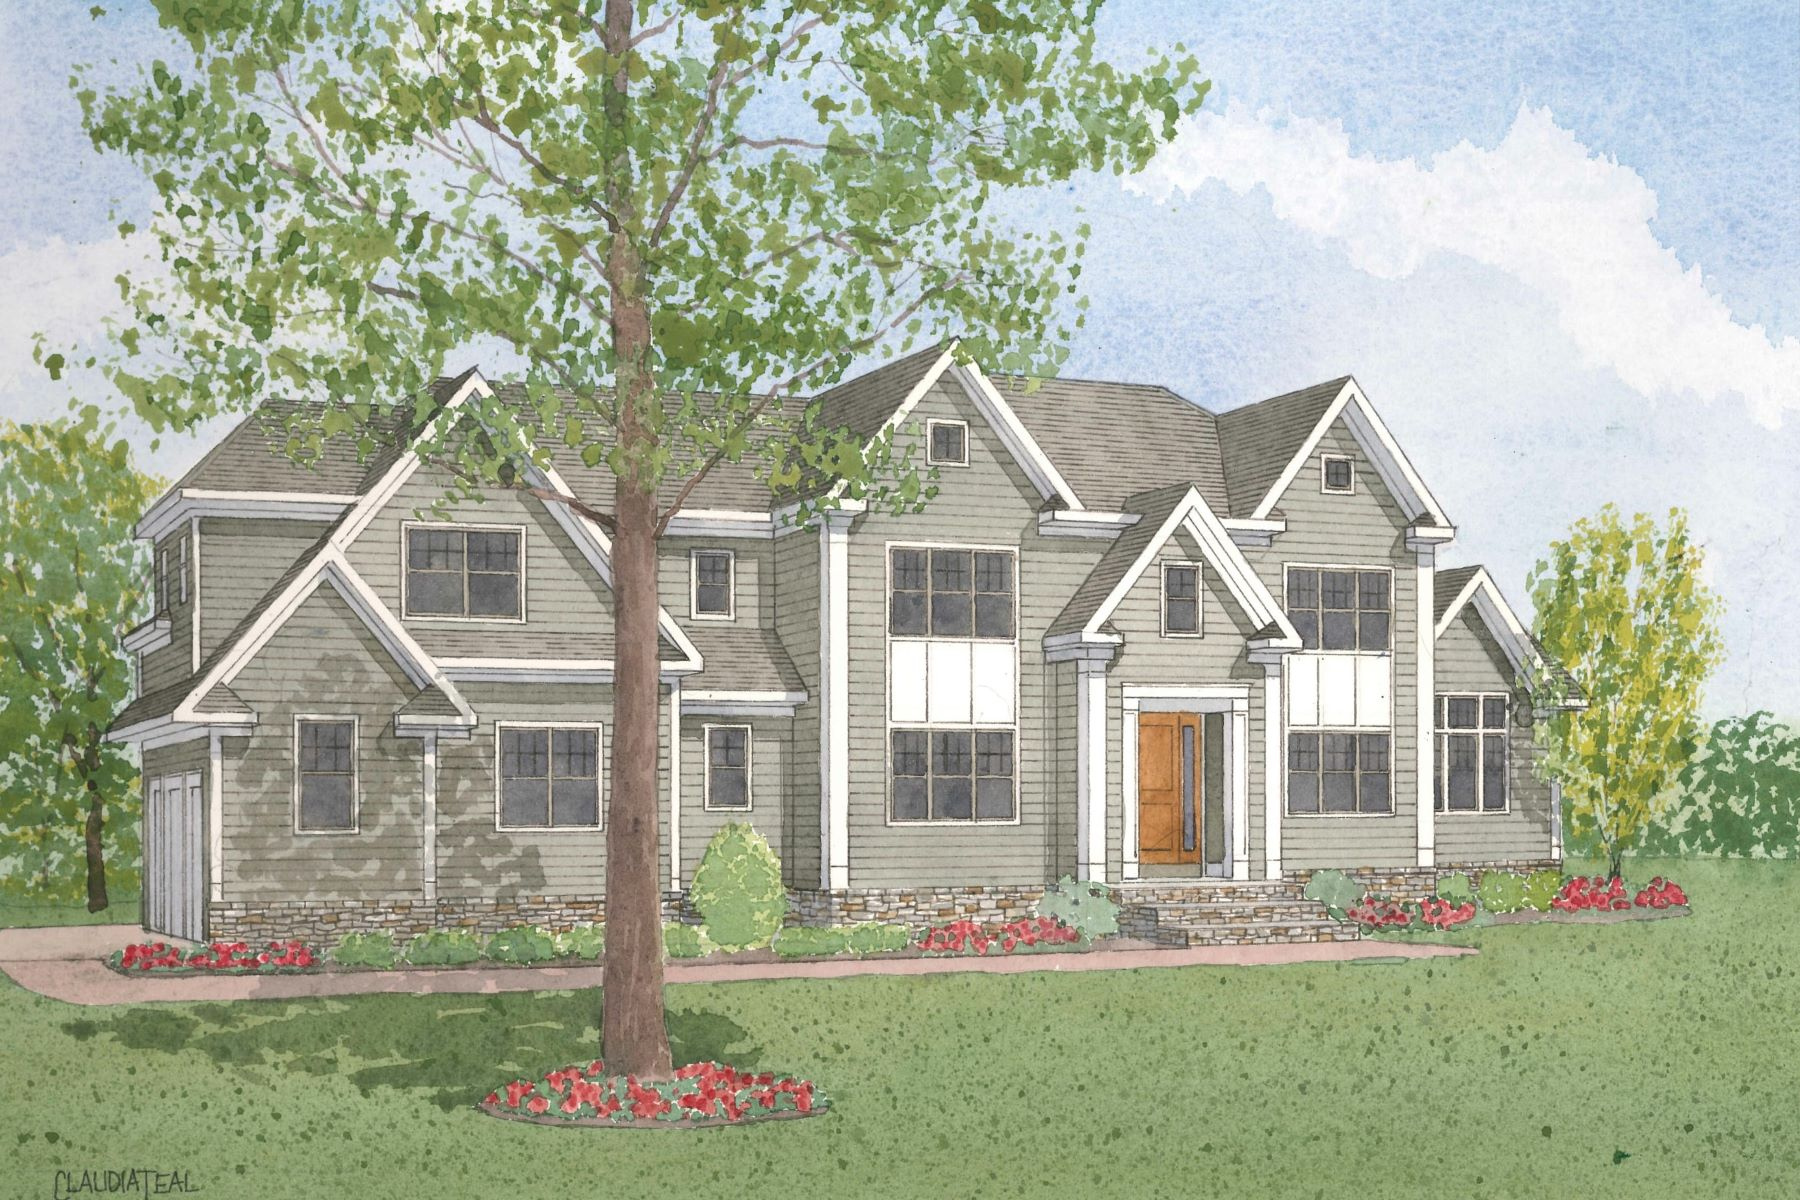 Single Family Home for Sale at All New Construction By Rockwell Custom Homes - Hopewell Township 4 Silvers Court Pennington, 08534 United States